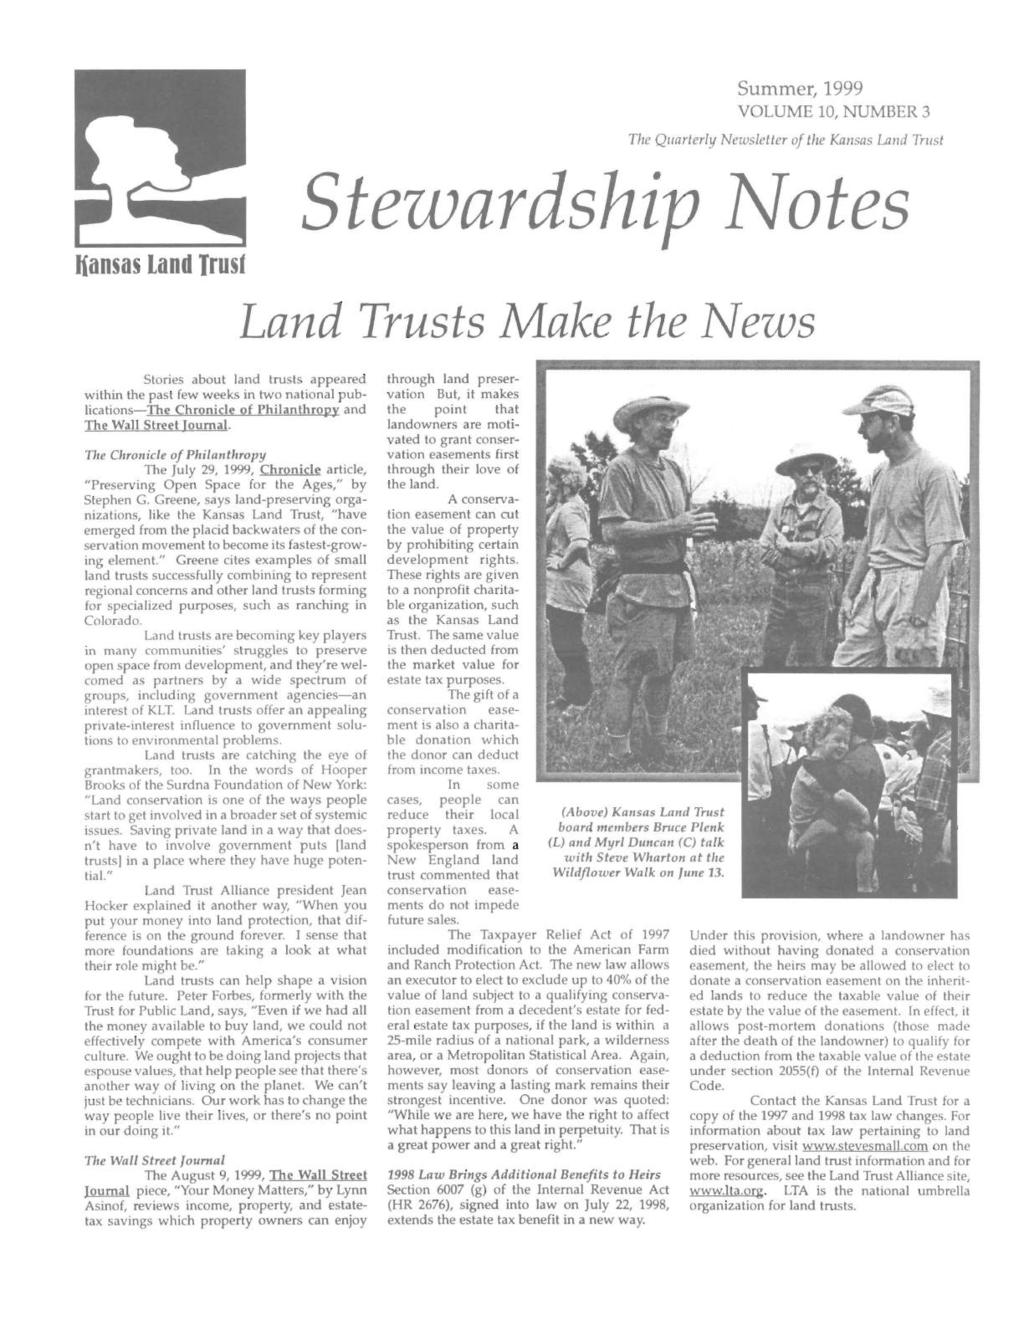 Summer, 1999 VOLUME 10, NUMBER 3 The Quarterly Newsletter of the Kansas Land Trust Stezvardship }Votes liansas Land Trust Land Trusts Make the News Stories about land trusts appeared within the past